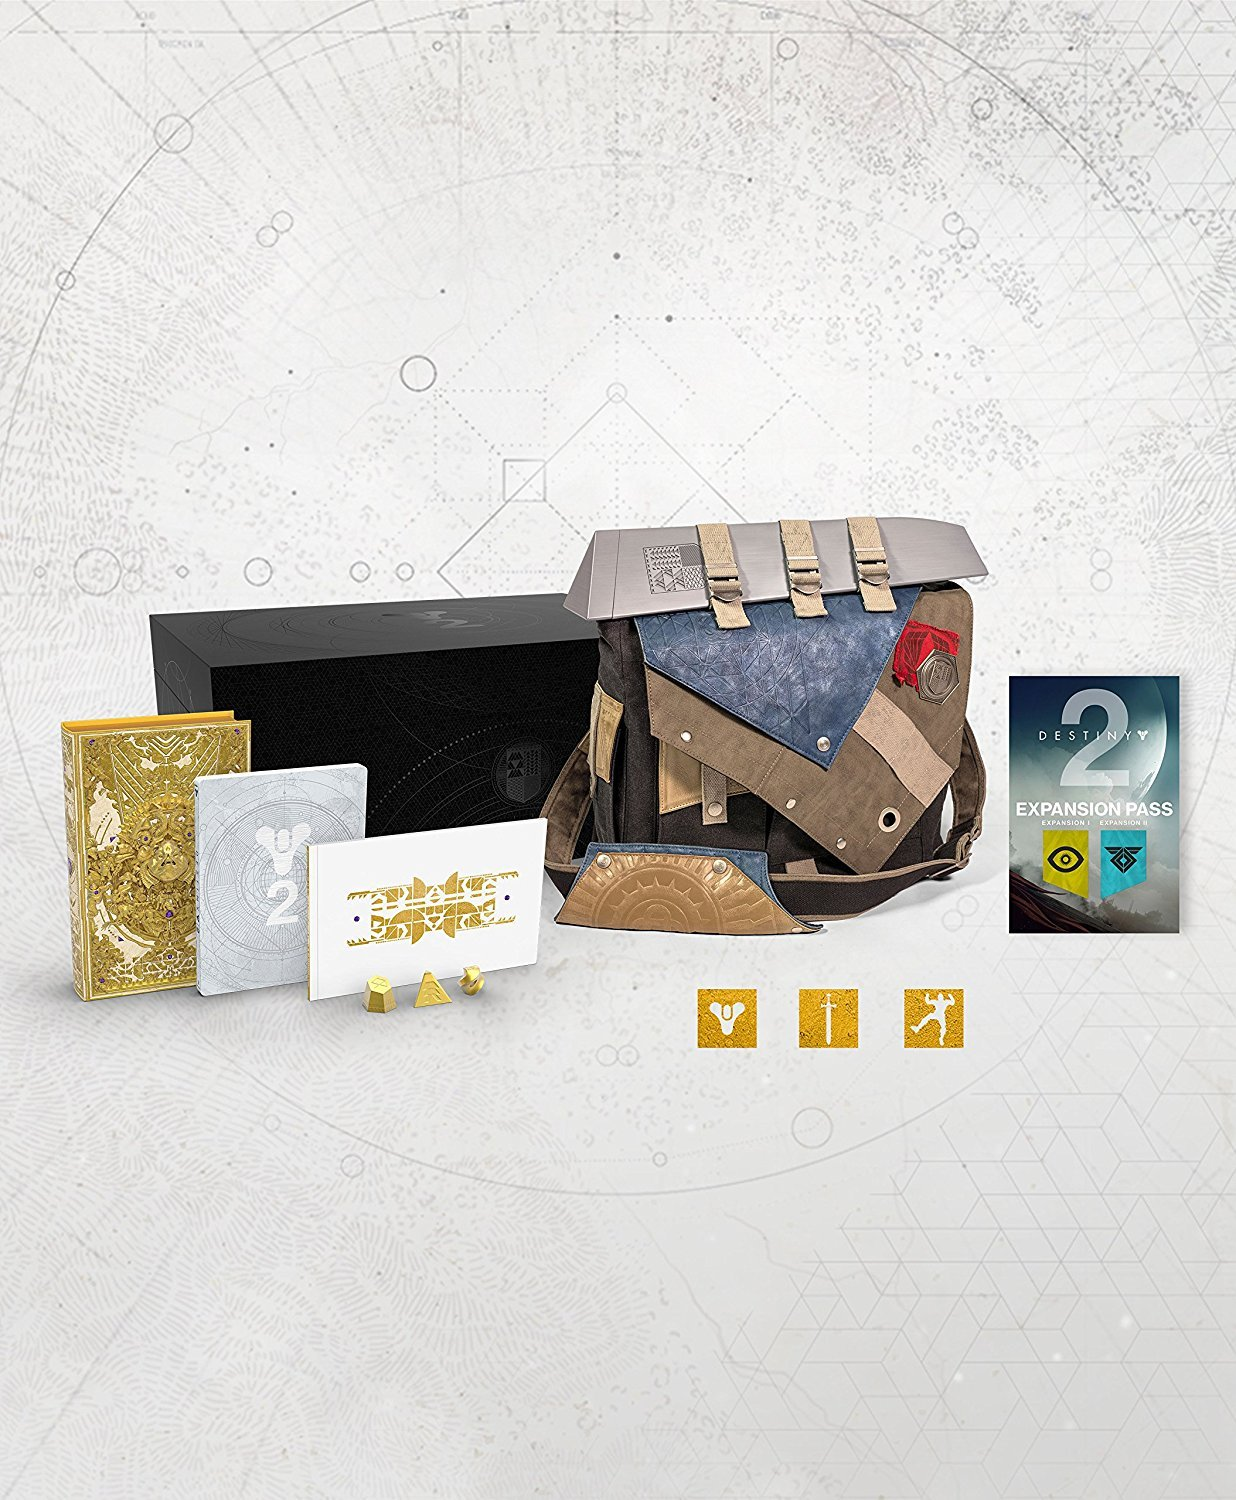 Destiny 2 Collector's Edition PS4 Sony /w Frontier Bag EUROPEAN UK Region ONLY